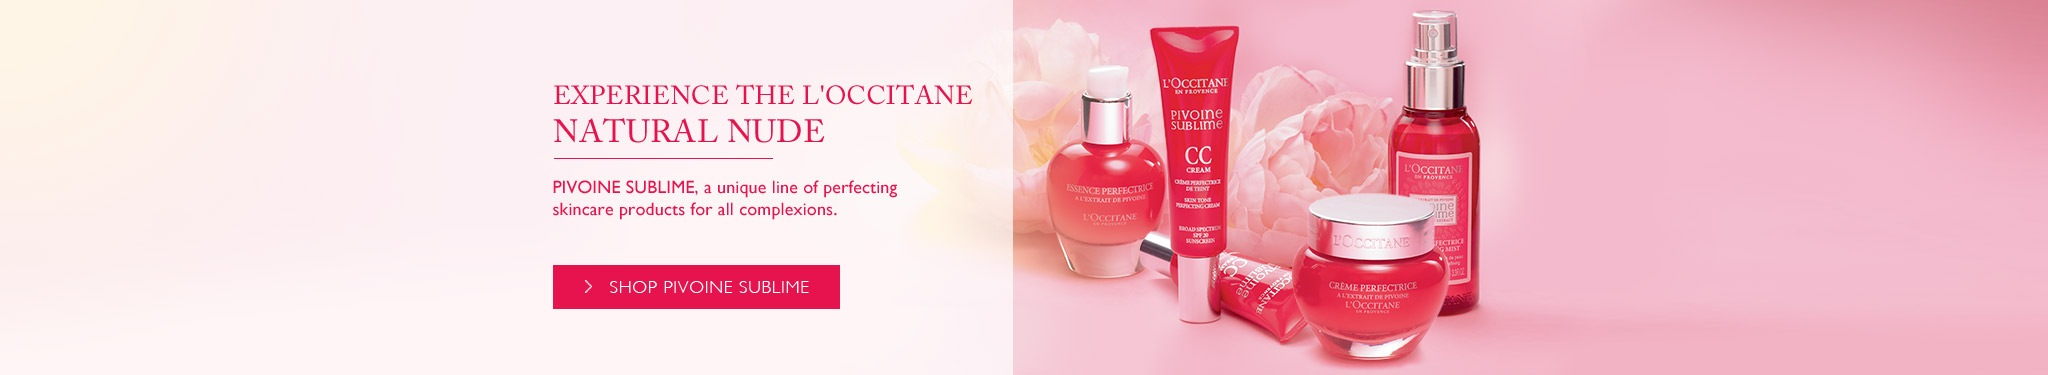 Experience the L'Occitane natural nude